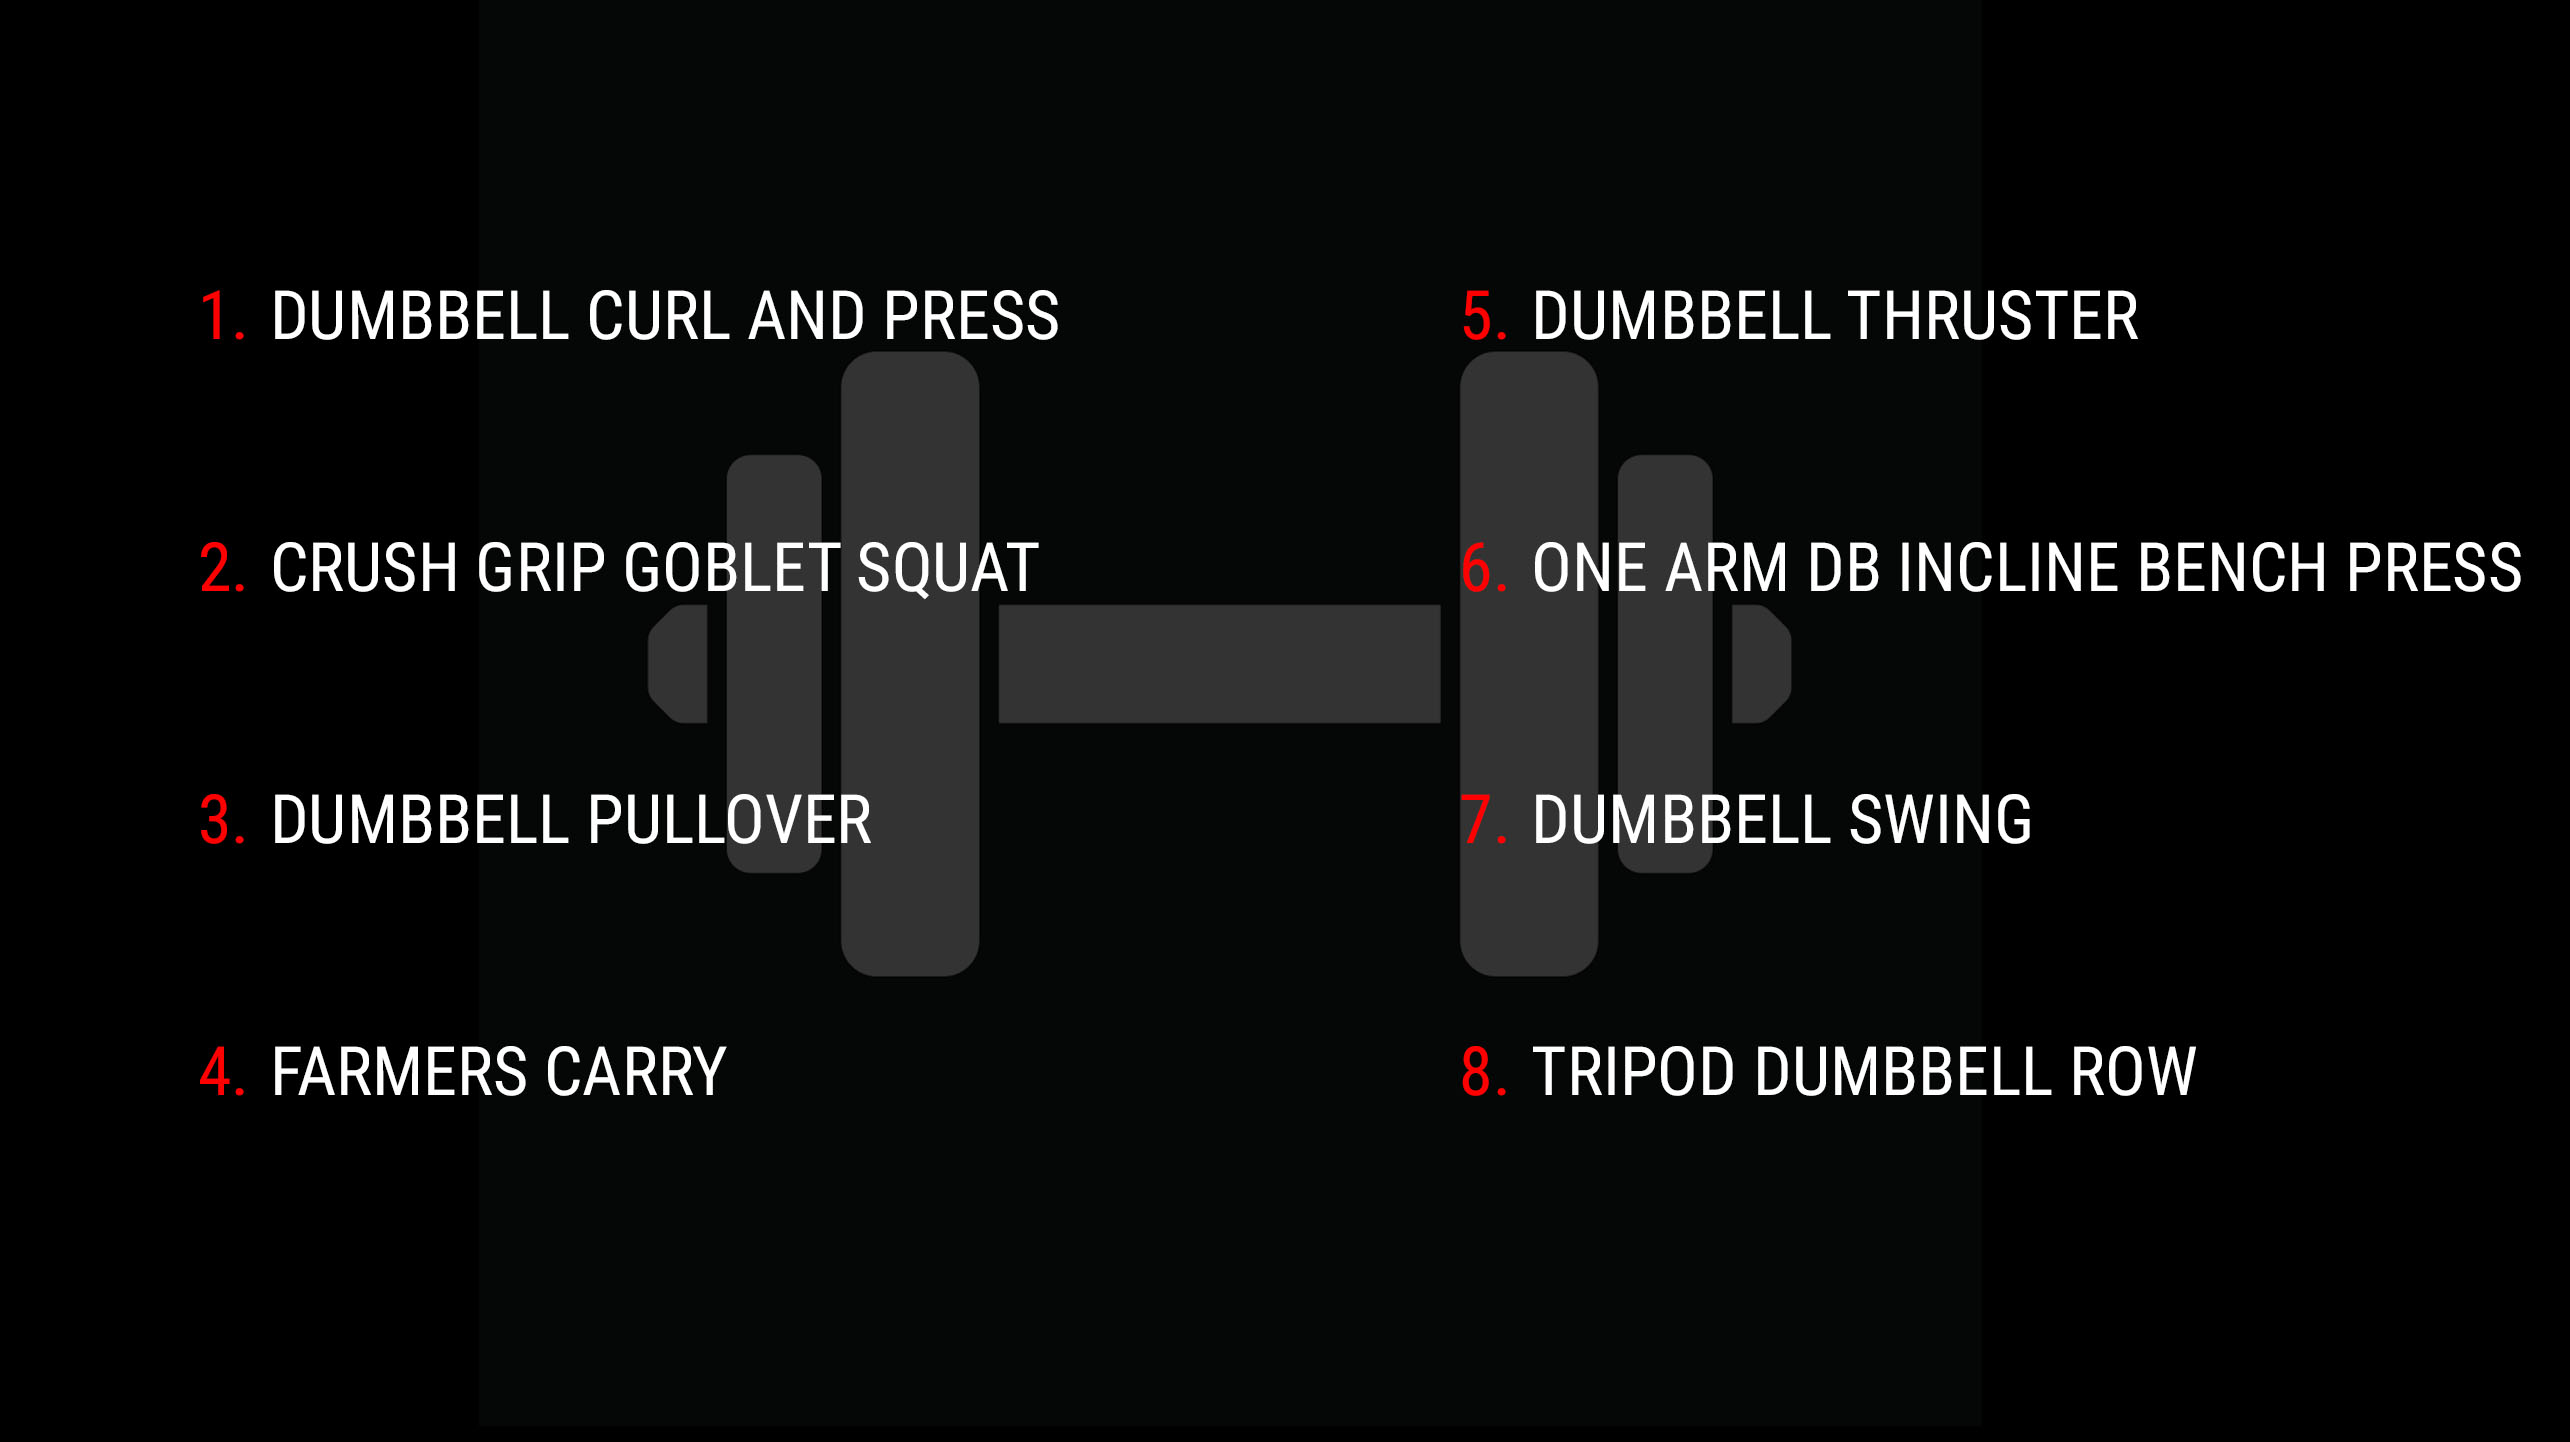 8 best dumbbell exercises: 1. dumbbell curl and press 2. crush grip goblet squat 3. dumbbell pullover 4. farmer's carry 5. dumbbell thruster 6. one arm db incline bench press 7. dumbbell swing 8. tripod dumbbell row